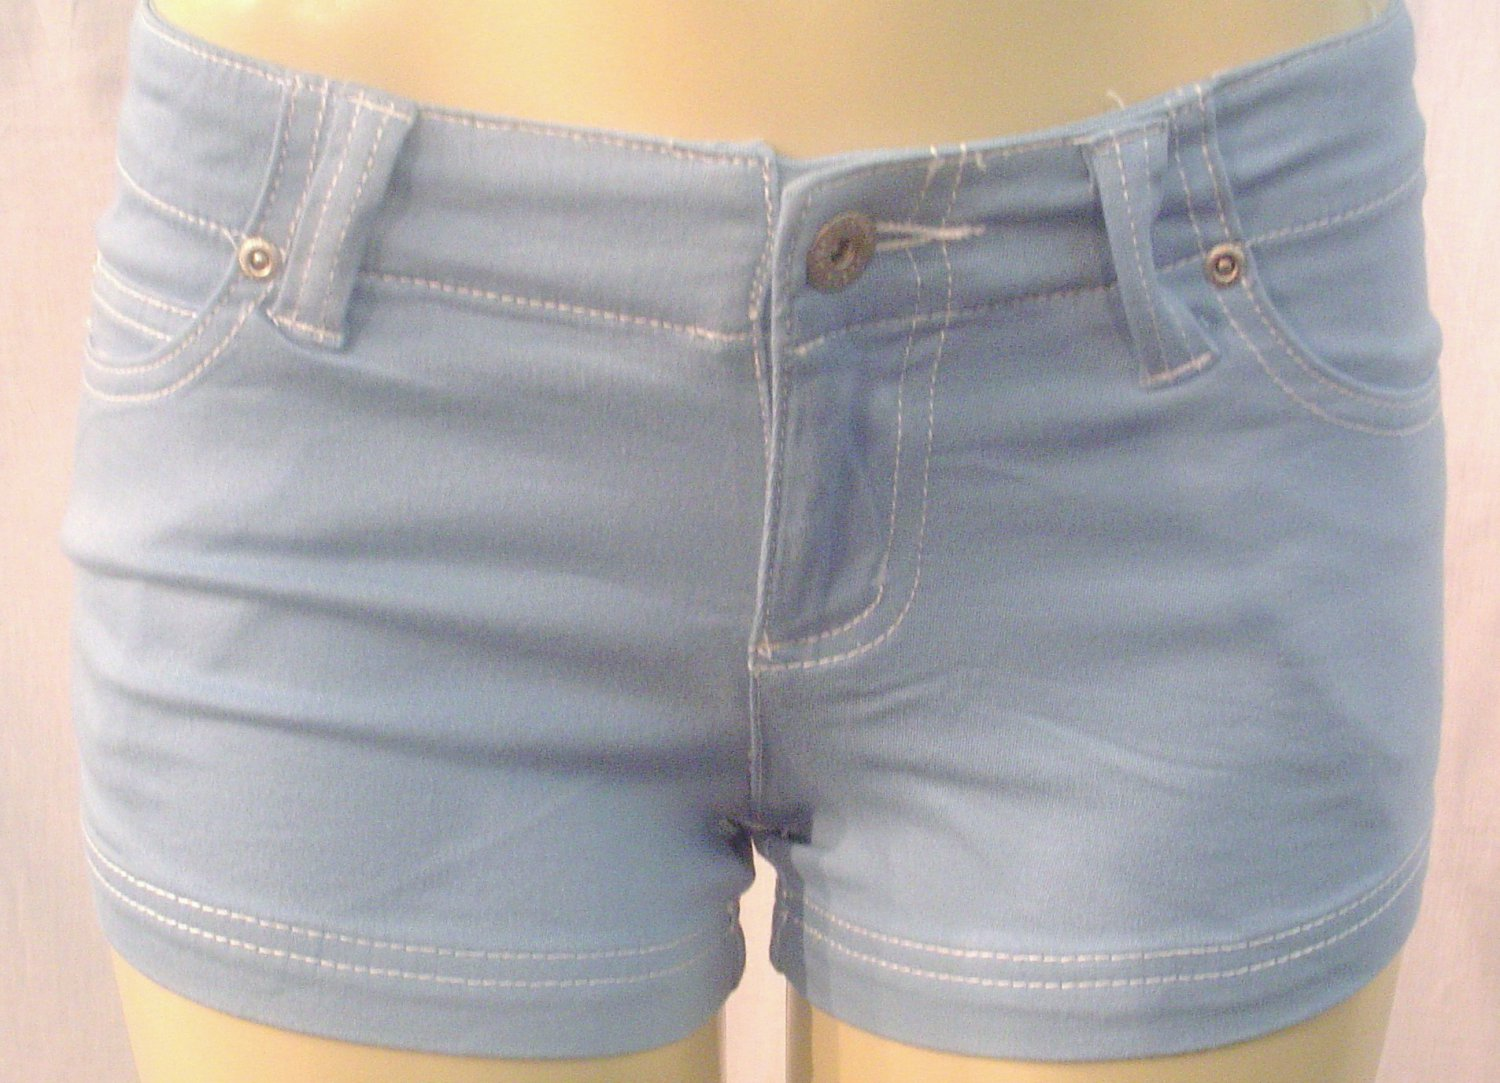 NEW ultra stretchy soft colored denim knit shorts, blue sz 11